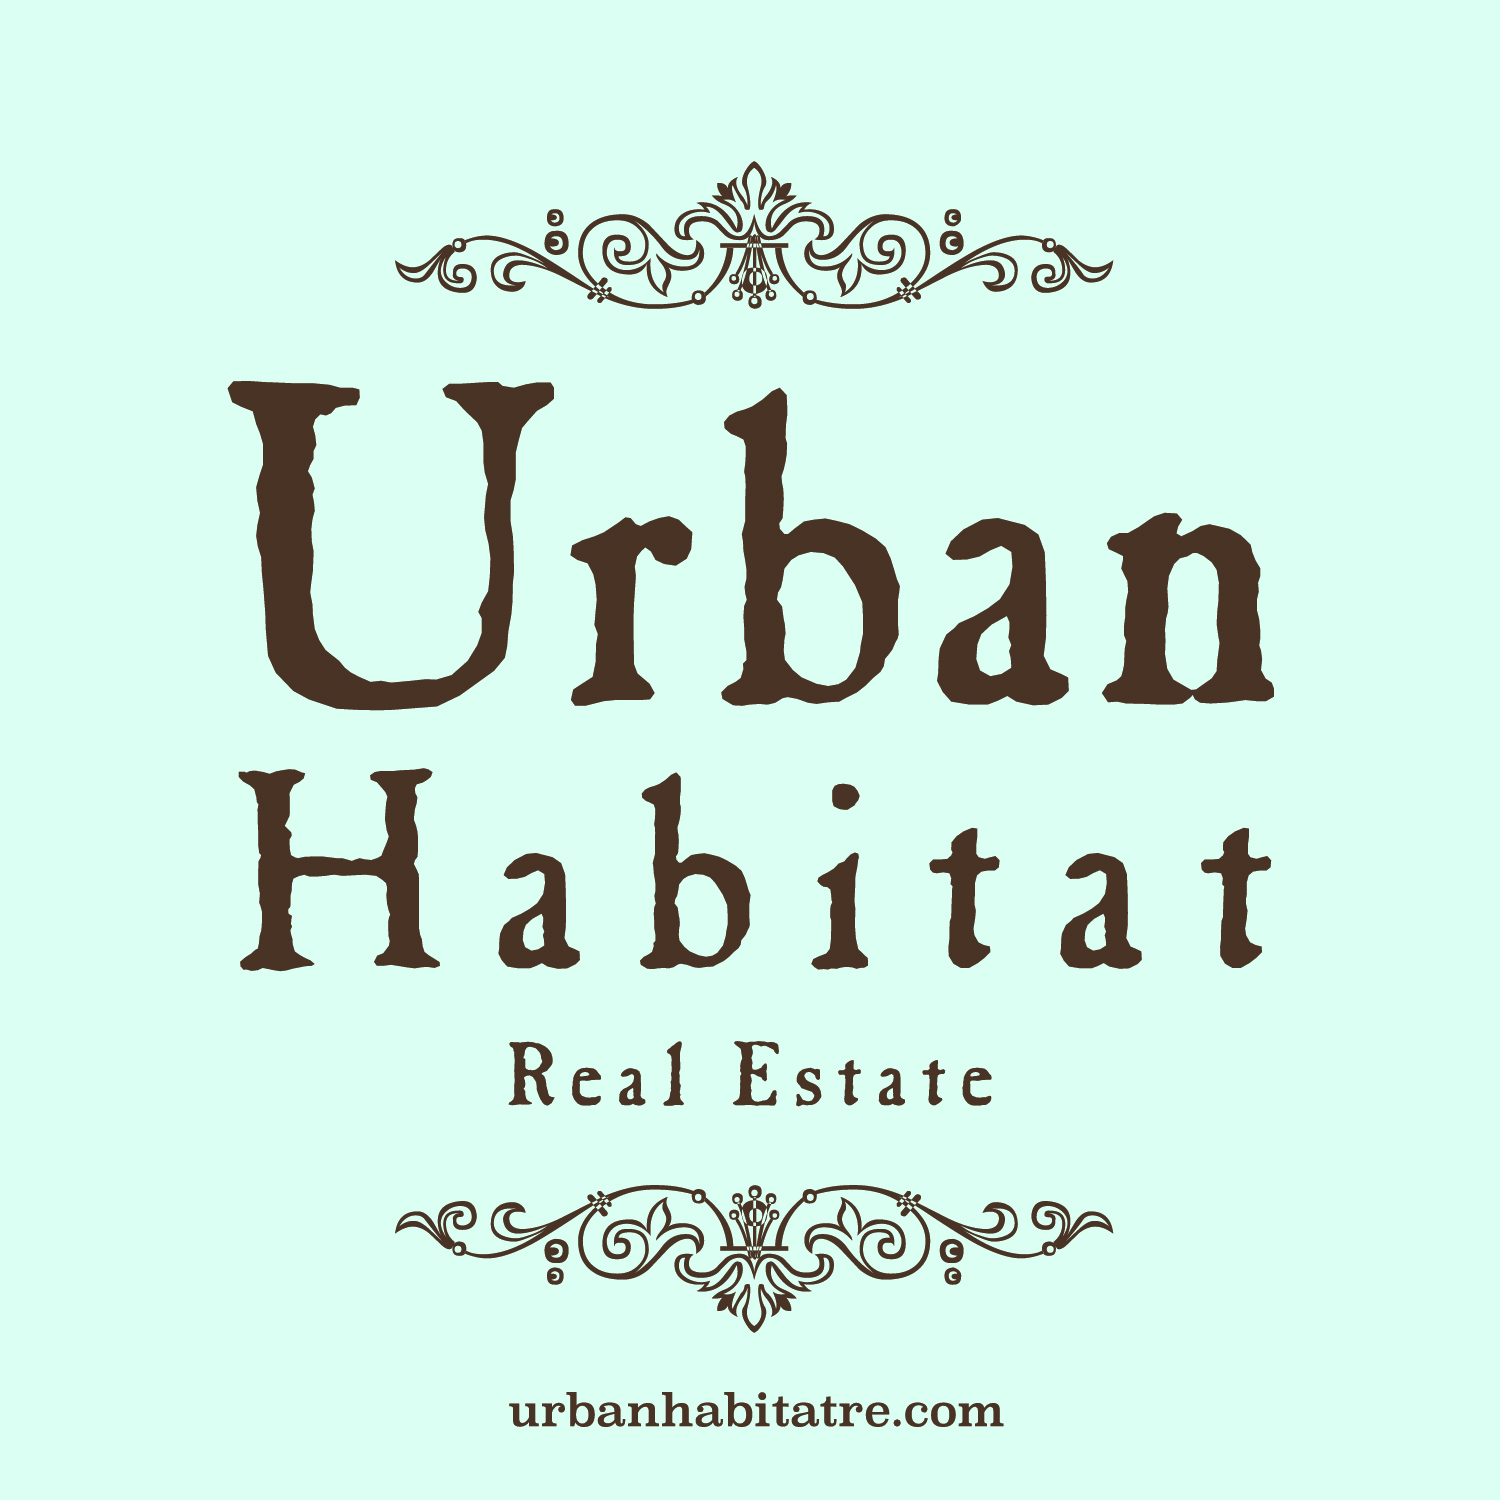 Looking for excellent agents to join our team at Urban Habitat